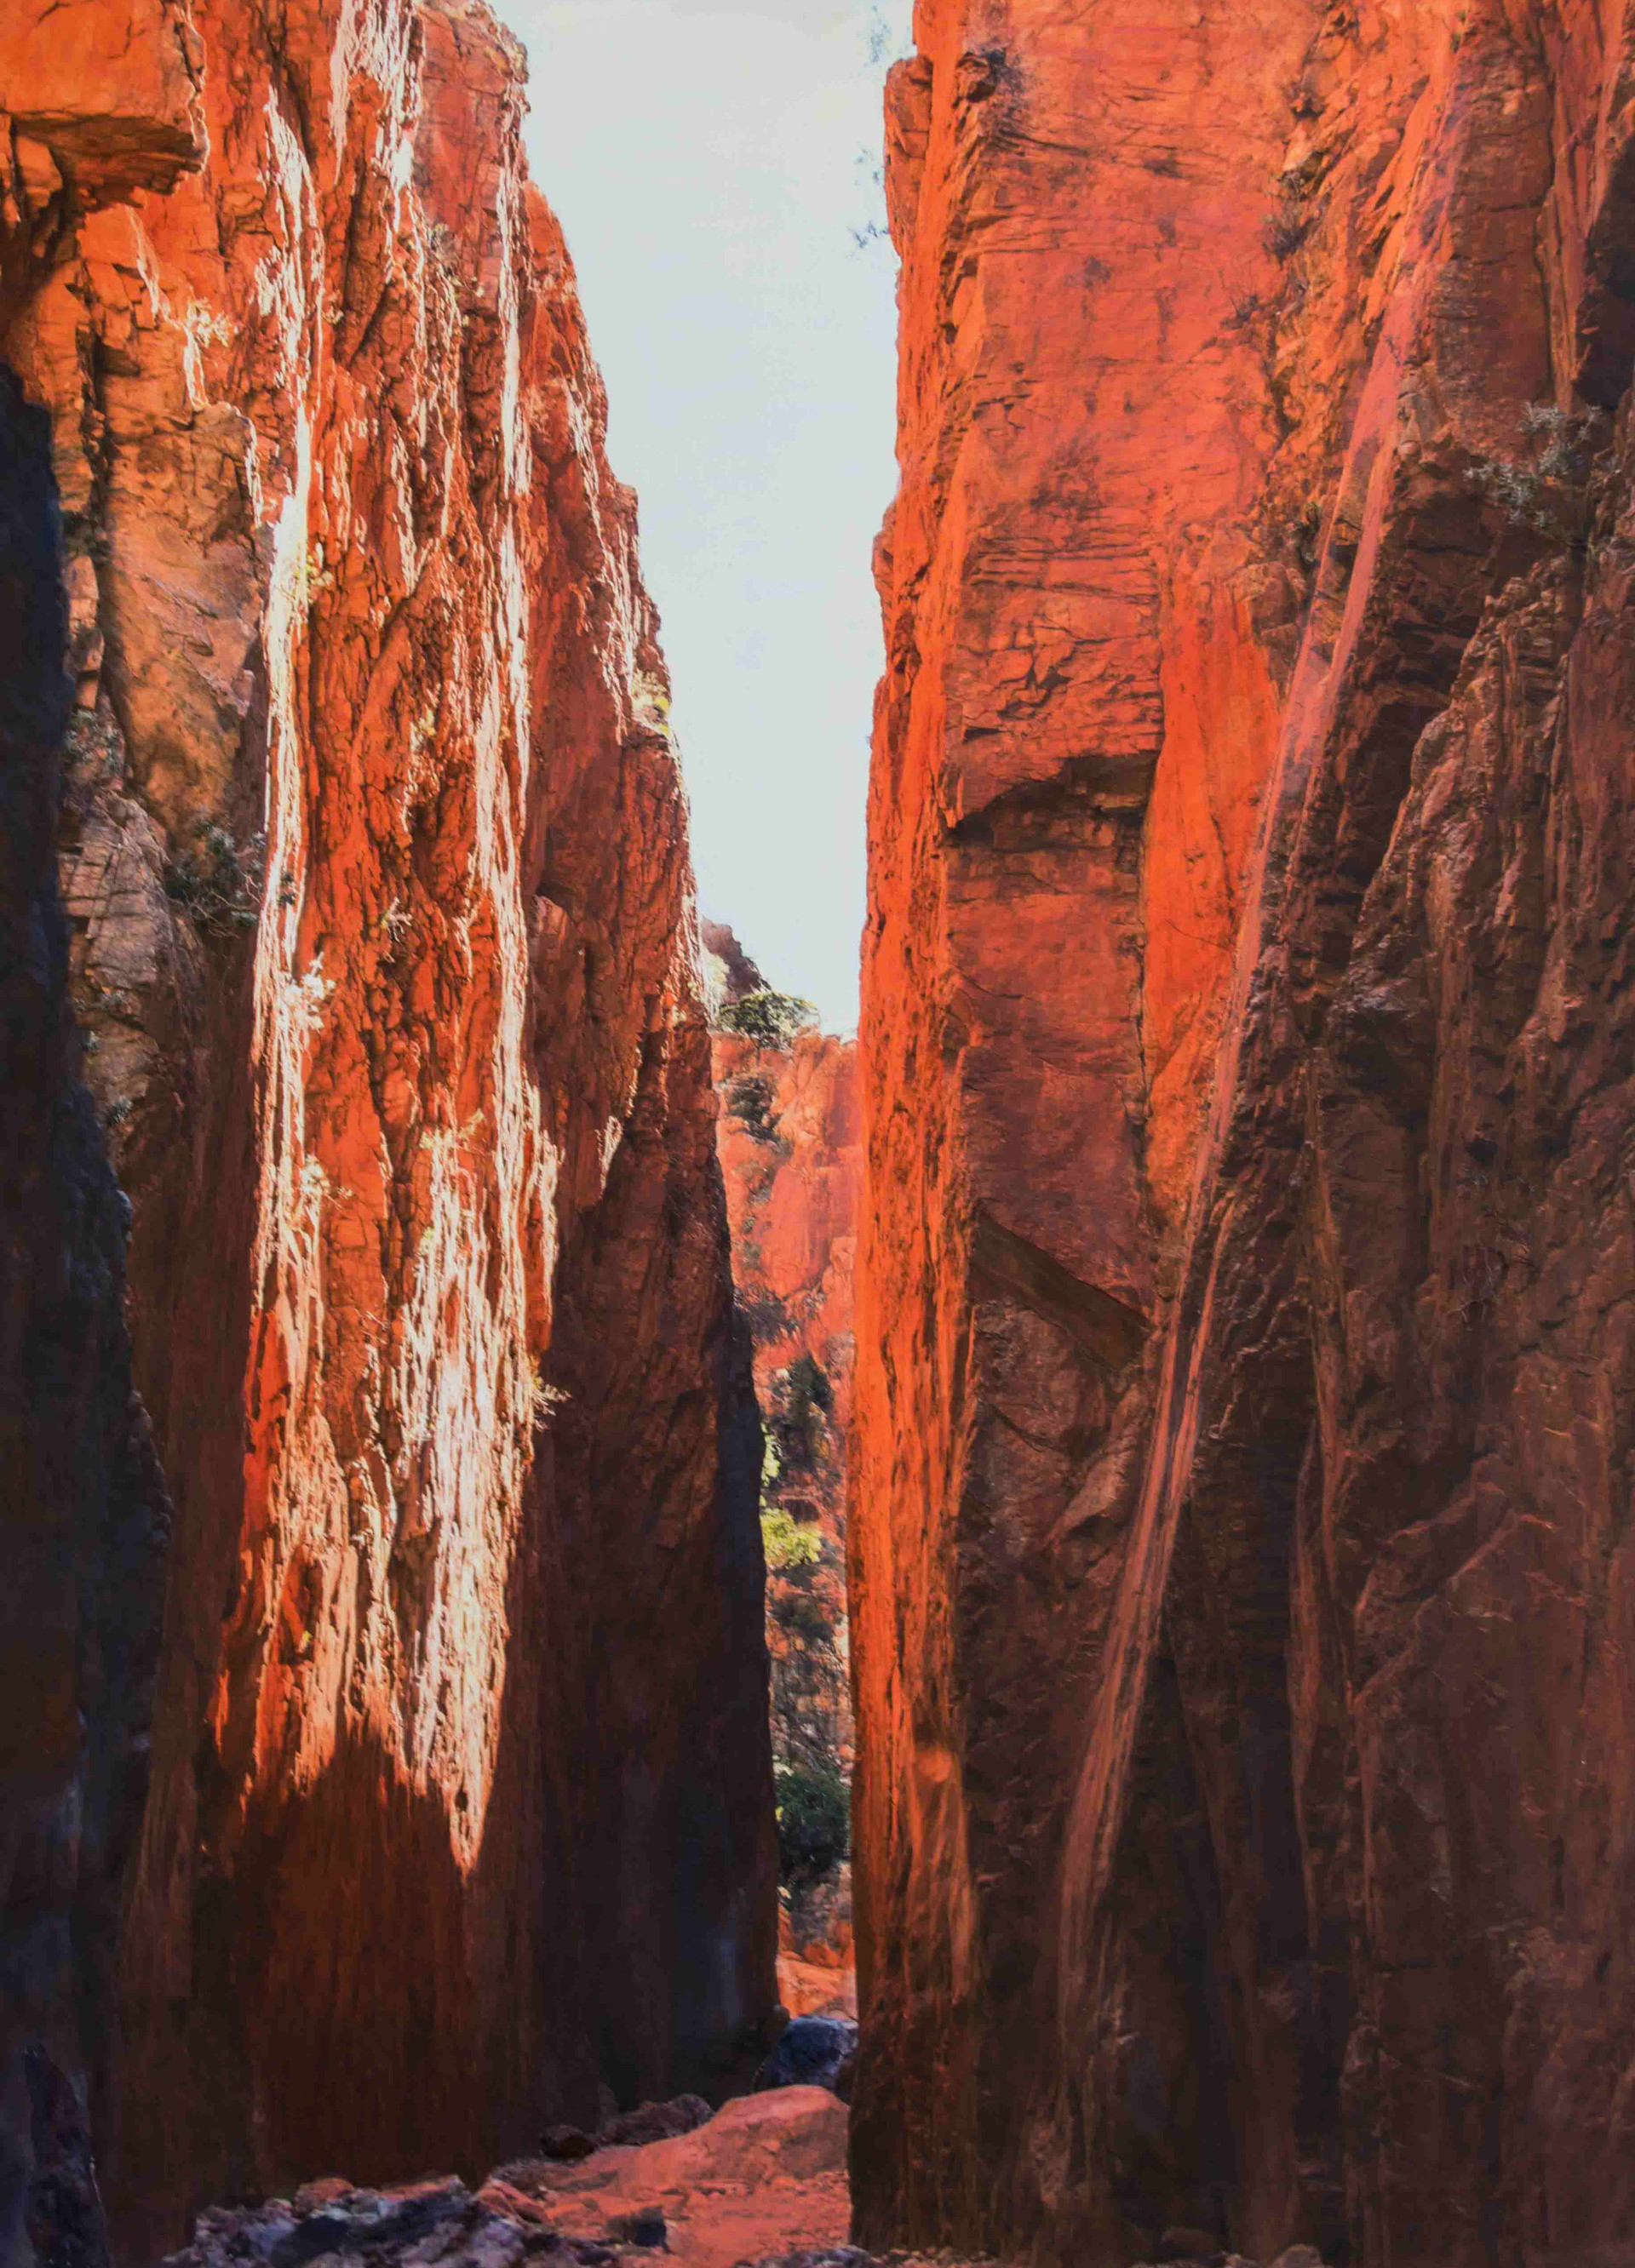 Standley Chasm - In the footsteps of Namatjira